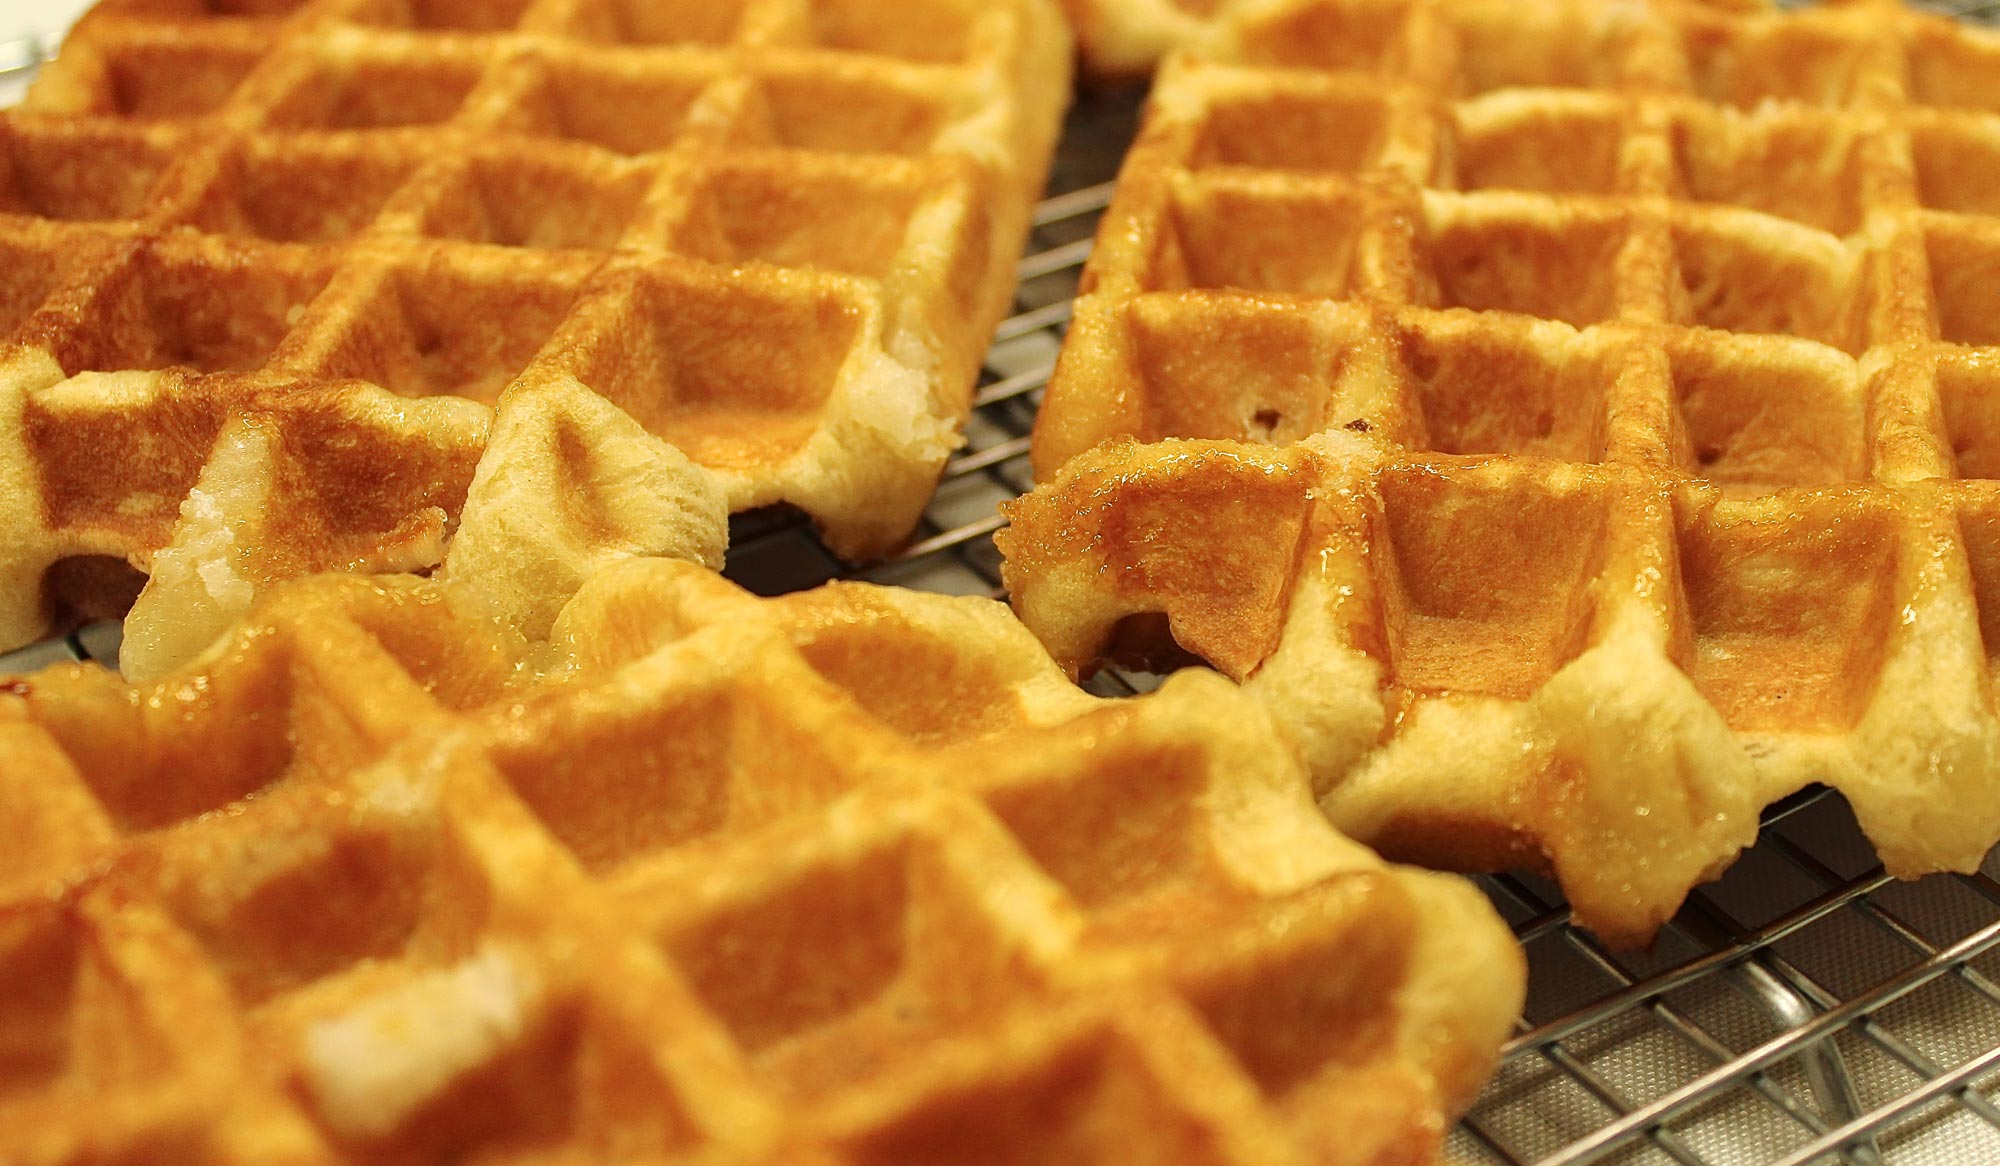 Vermont Belgium Waffles, Catering, Franchising, Pre.